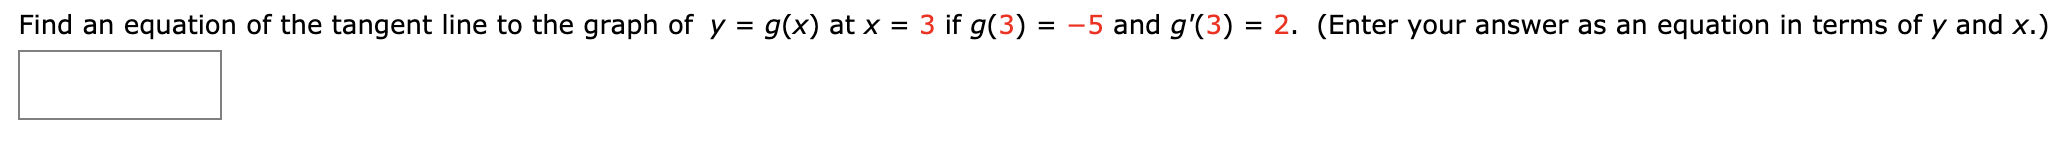 Find an equation of the tangent line to the graph of y = g(x) at x = 3 if g(3) = -5 and g'(3) = 2. (Enter your answer as an equation in terms of y and x.)